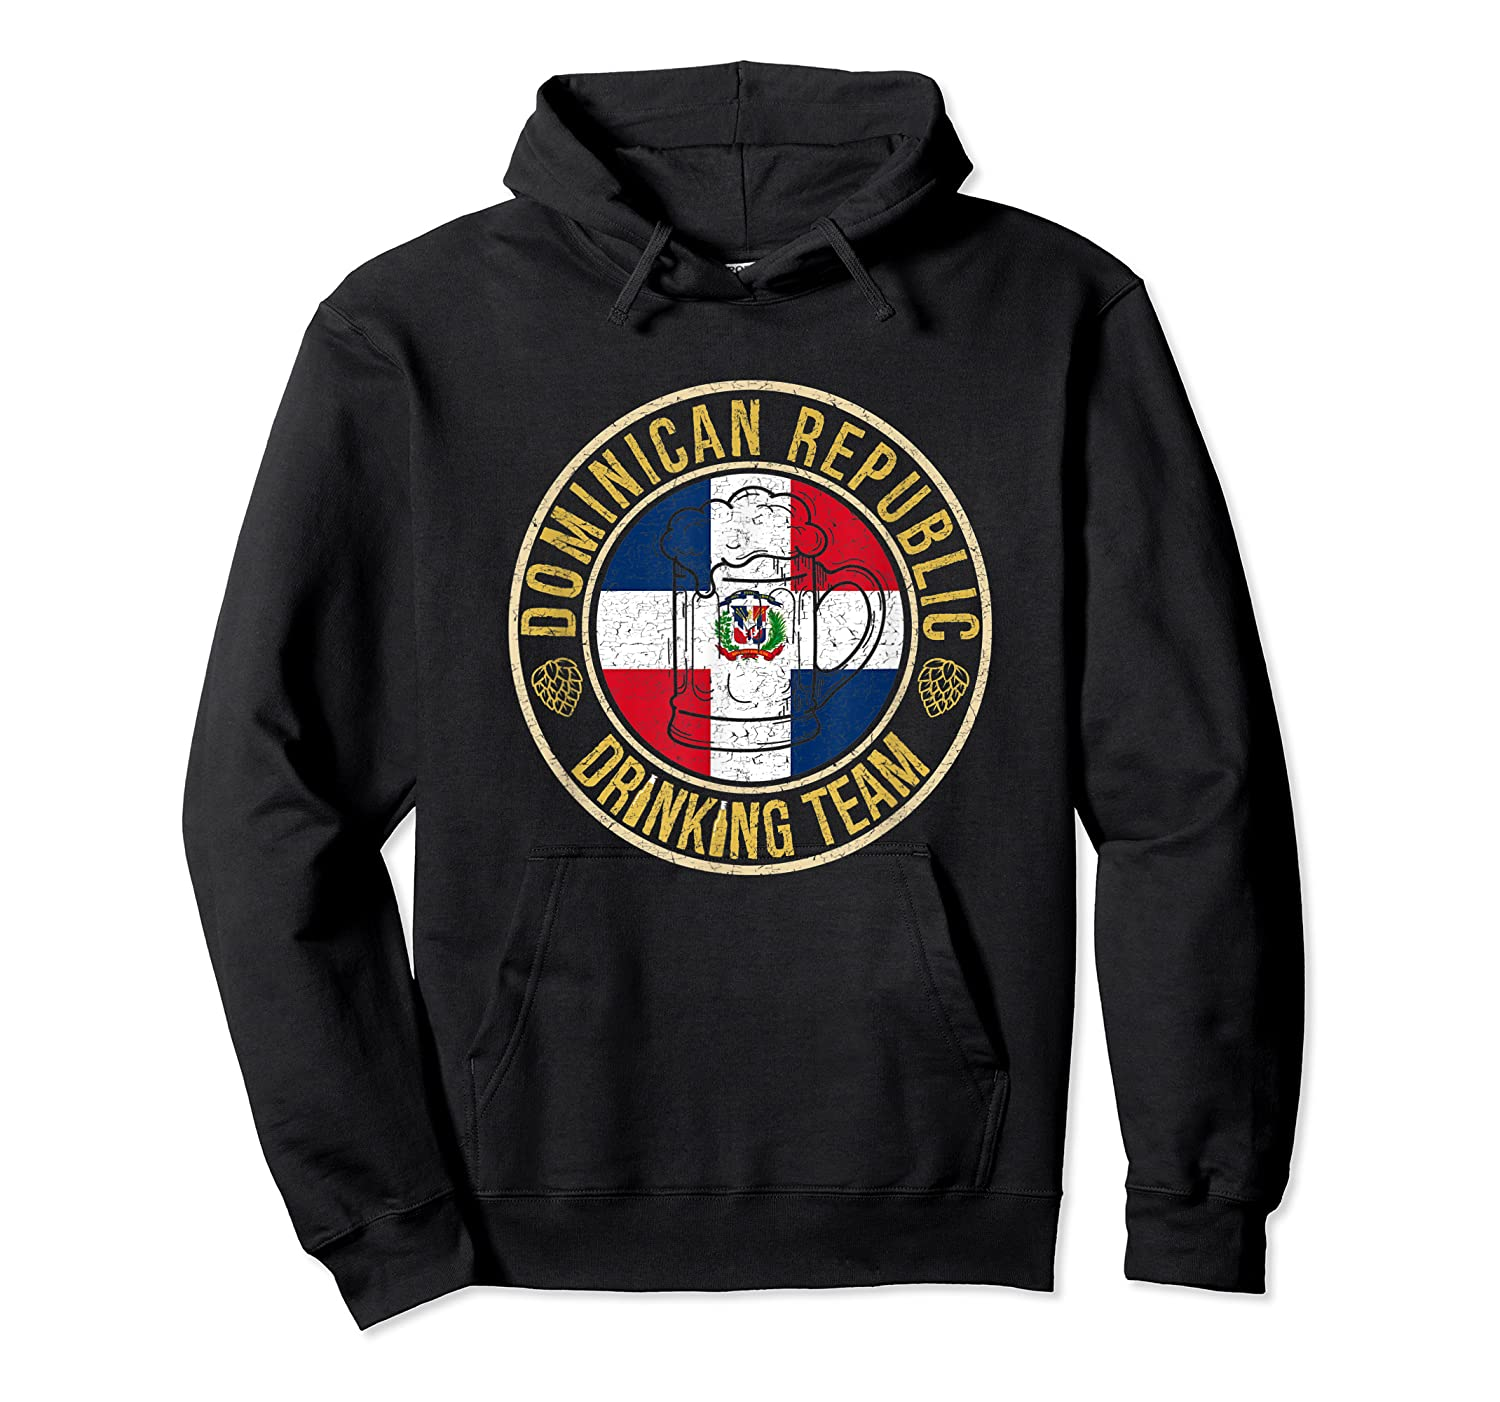 Funny Beer Dominican Republic Drinking Team Casual T-shirt Unisex Pullover Hoodie